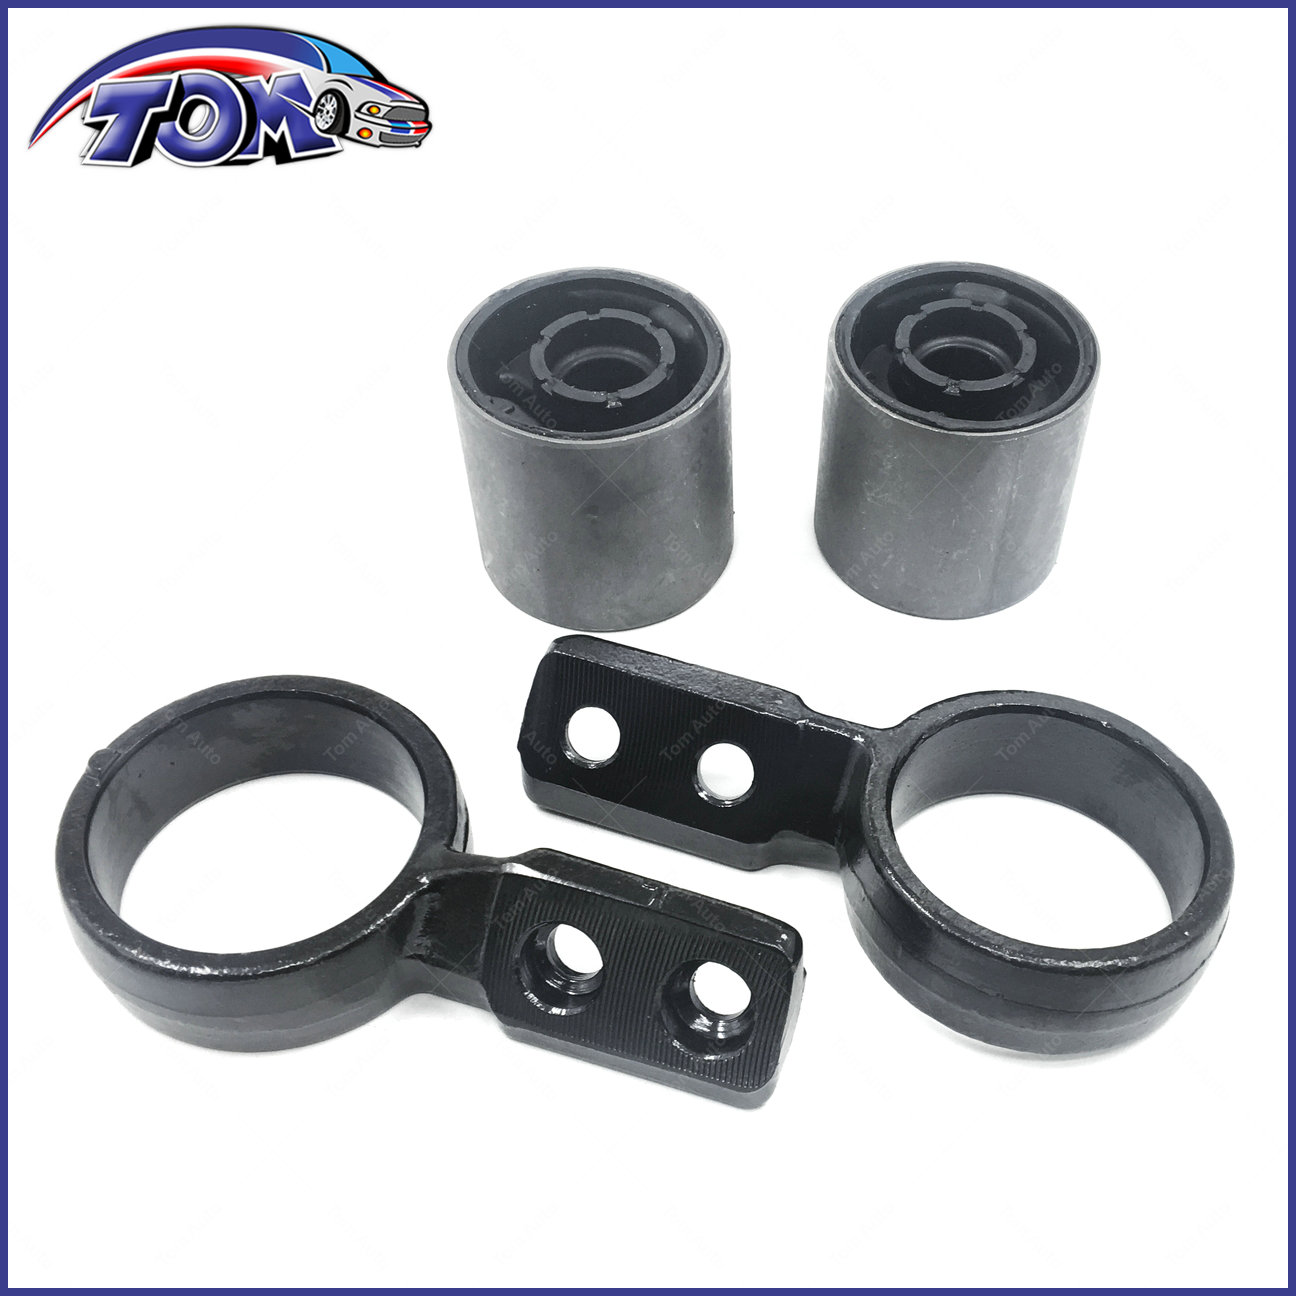 hight resolution of details about new set of 4 control arm bushing retainer bracket for bmw e46 325xi 330xi